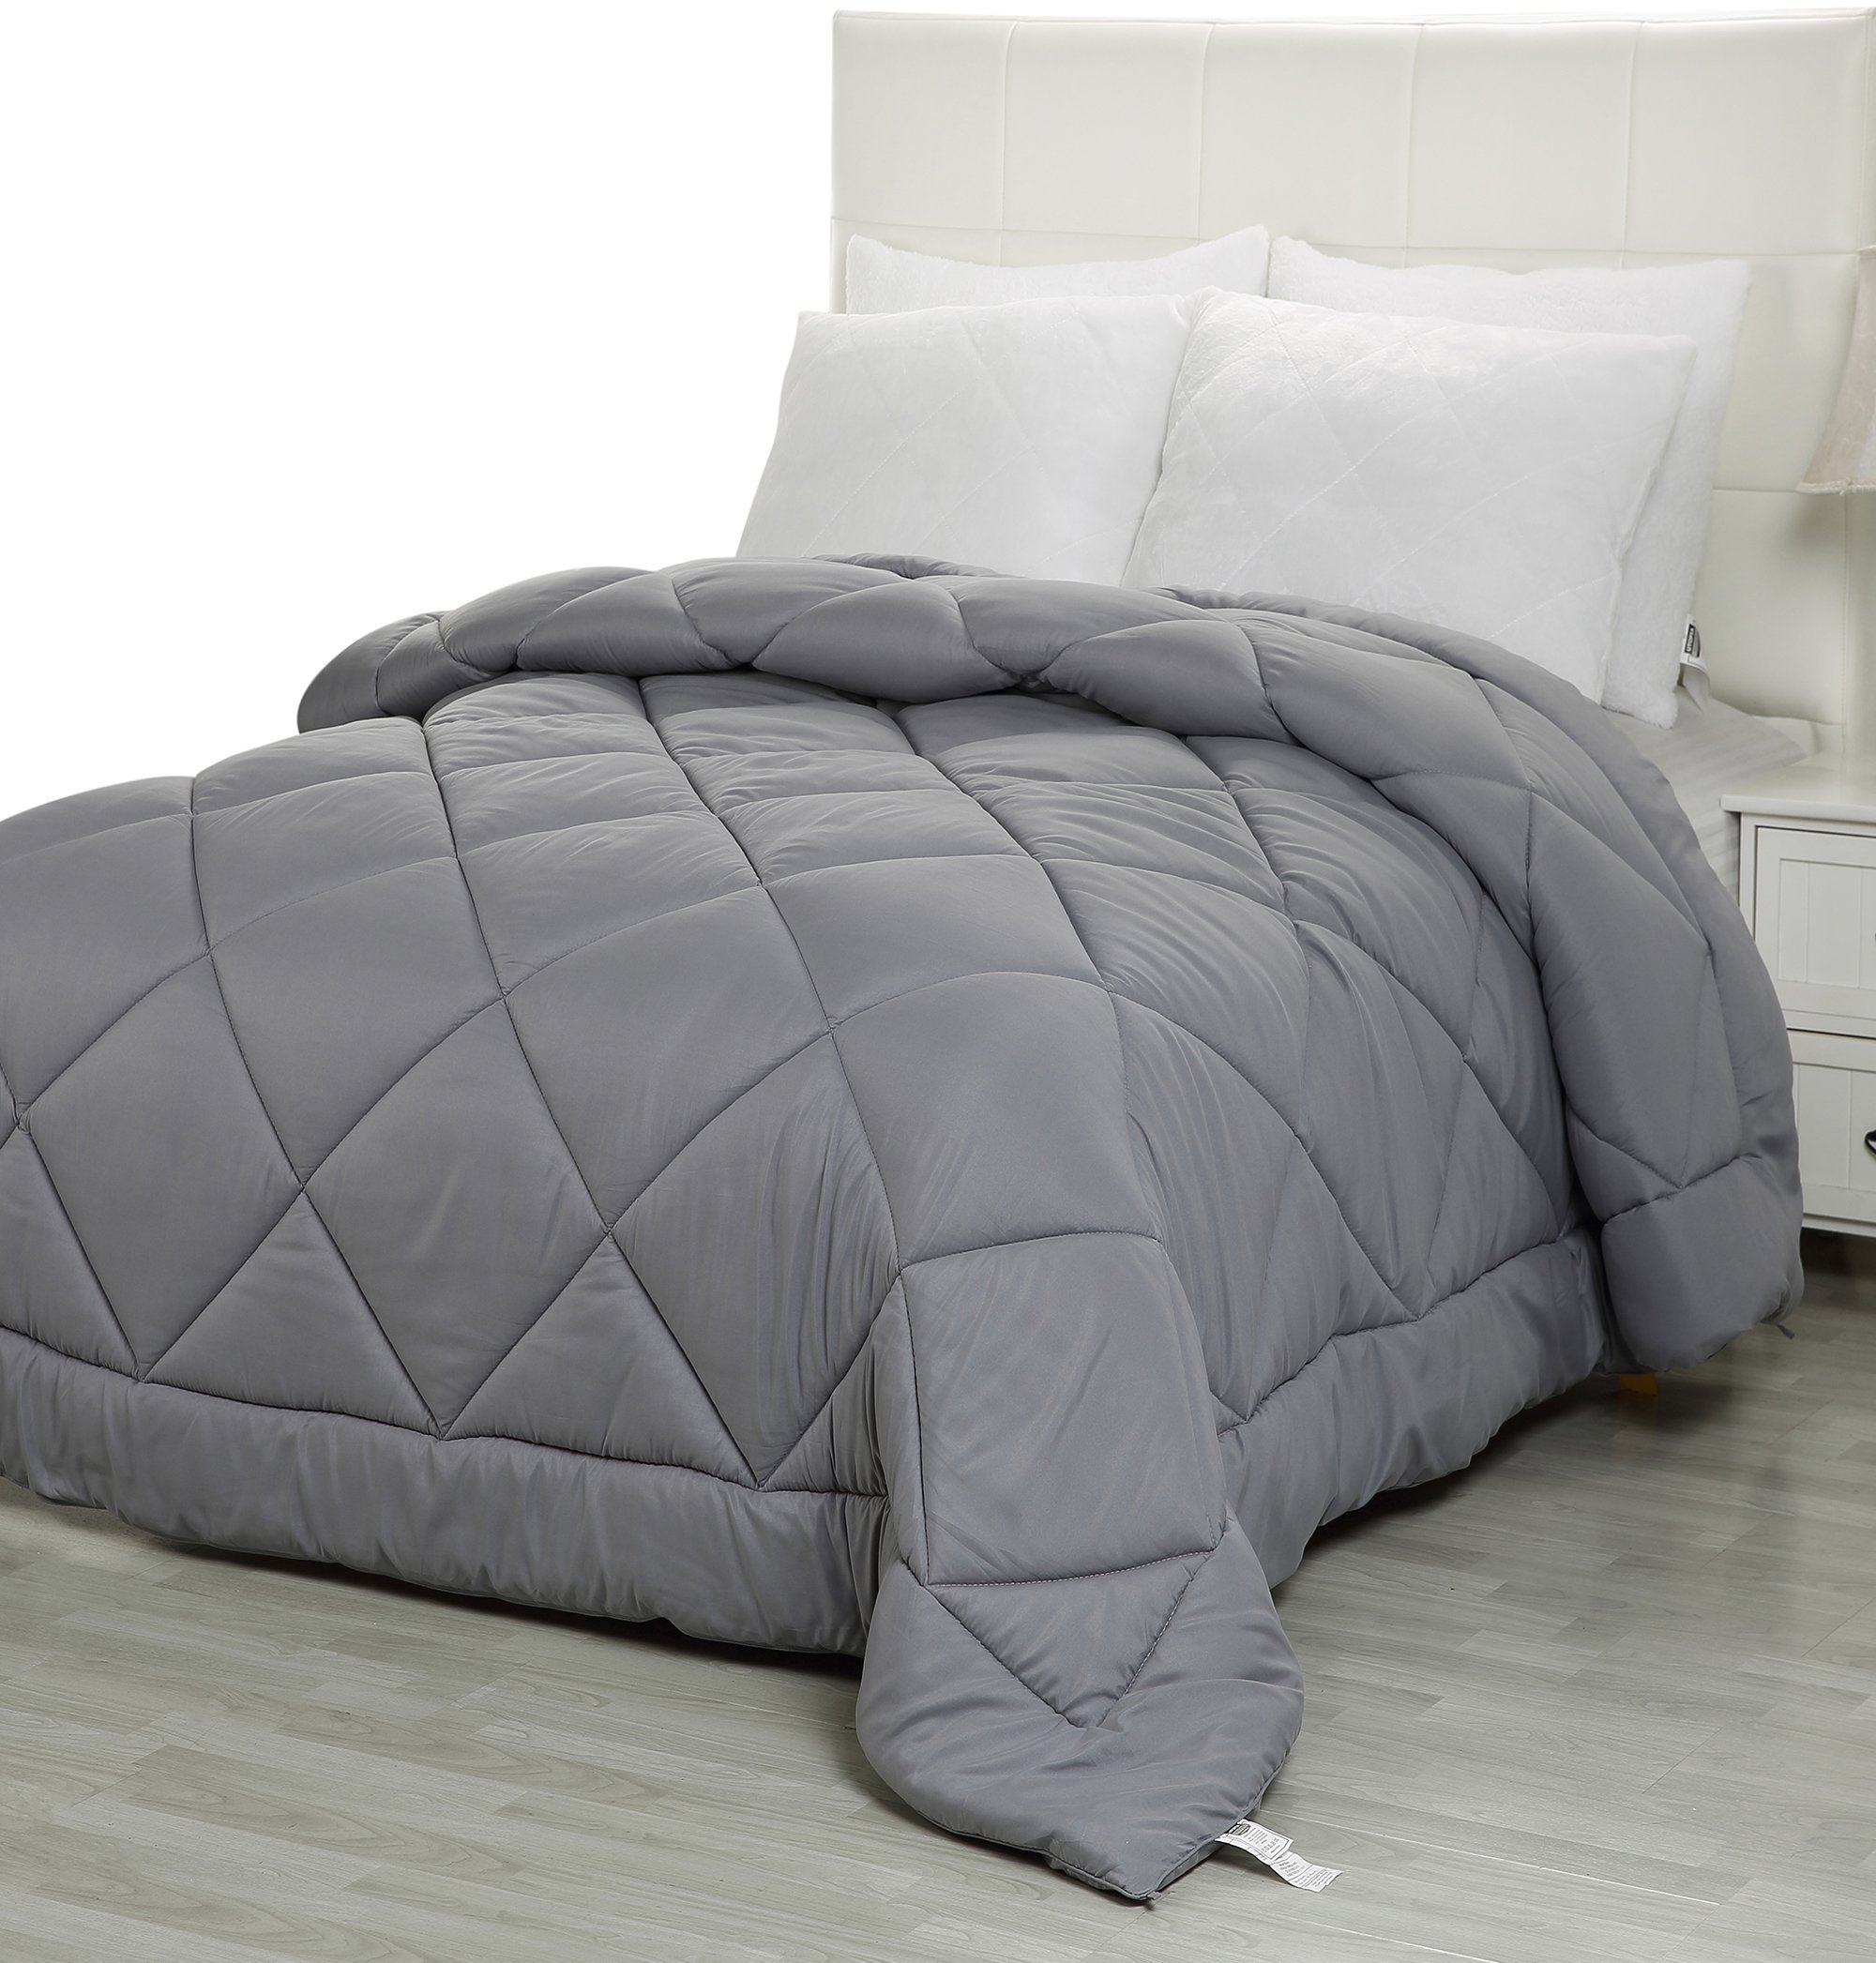 Utopia Bedding Queen Comforter Duvet Insert Grey - Quilted Comforter Corner Tabs - Plush Siliconized Fiberfill, Box Stitched Down Alternative Comforter, Machine Washable